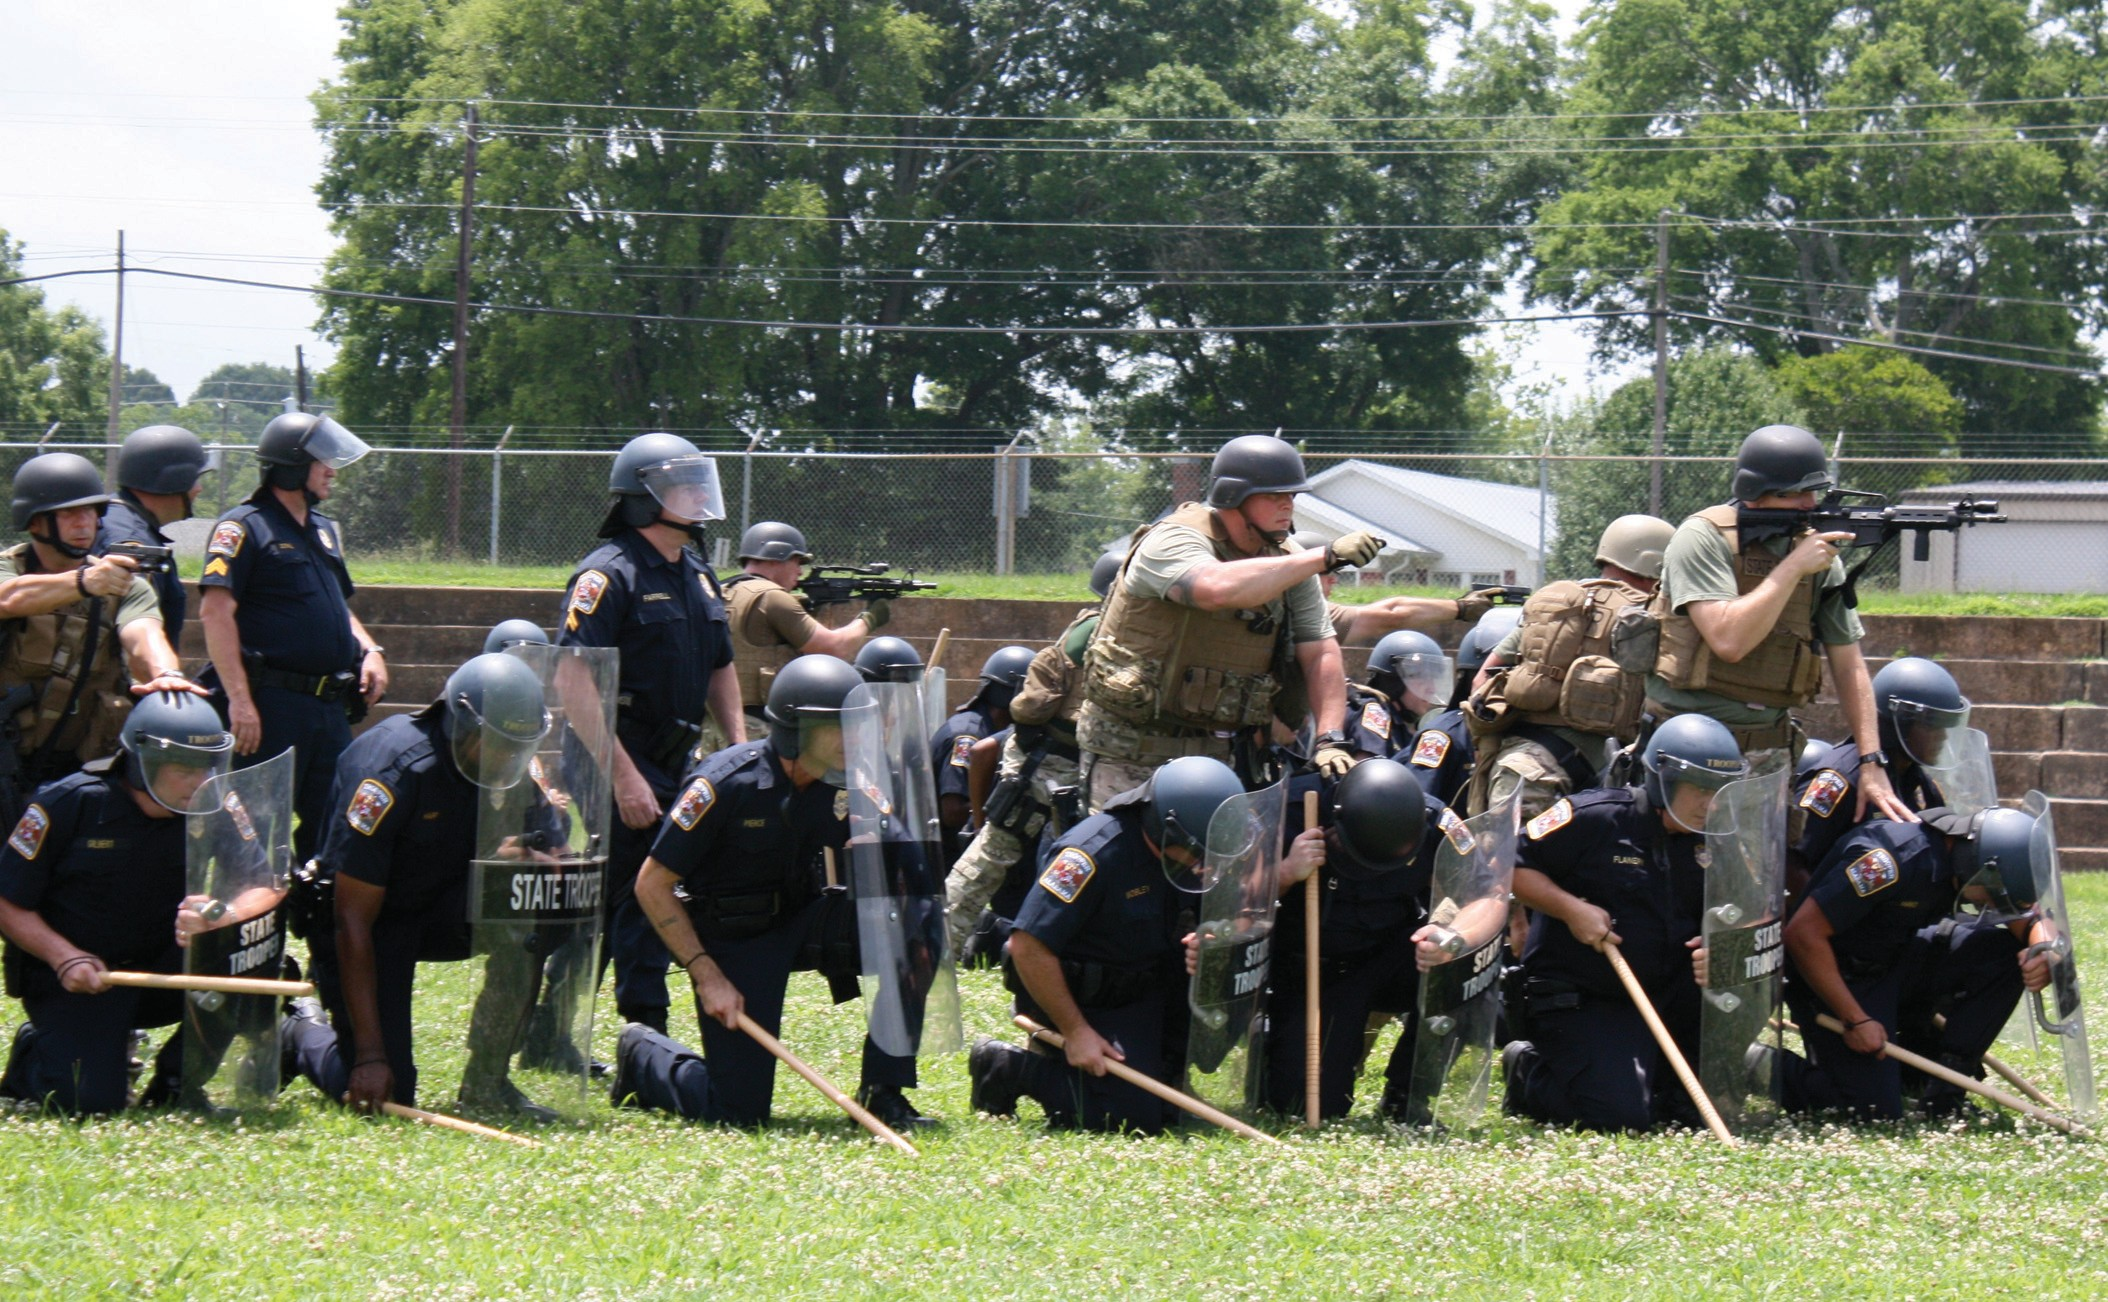 On Thursday, June 27, approximately 100 state troopers from the north and north central platoons conducted their annual crowd control training at the Blount County-Oneonta Agri-Business Center. According to Lt. Allan Battles of the Alabama Department Highway Patrol, the two platoons involved in the training stay current on what to do if crowd control is needed. Most recently, the troopers have been more involved in situations like tornado and hurricane disaster relief. After these types of situations occur, the platoons assist in closing roads, directing traffic, unloading trucks, providing security, and other activities during and after the disaster. Battles says this is the first time he can remember the crowd control formation training being conducted in Oneonta, but he said it was a good choice because of its central location. Troopers traveled from as far away as Tuscaloosa, Gadsden, and Talladega. – Nicole Singleton